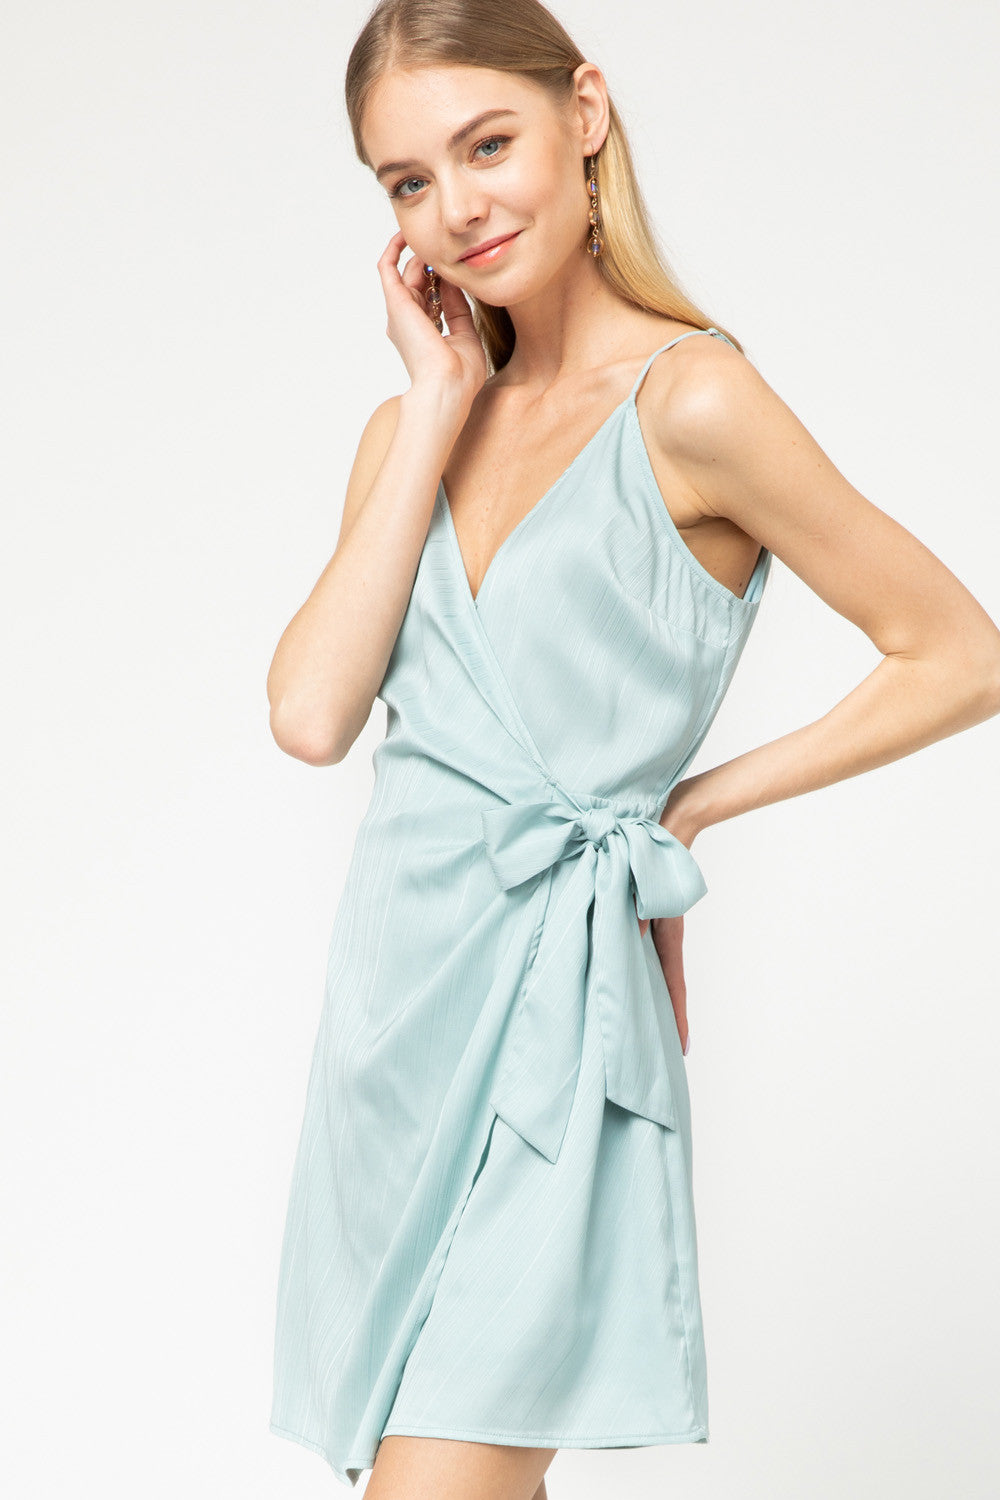 Textured satin sleeveless surplice wrap dress featuring self-tie detail at waist. Adjustable straps. Lined. Semi-sheer